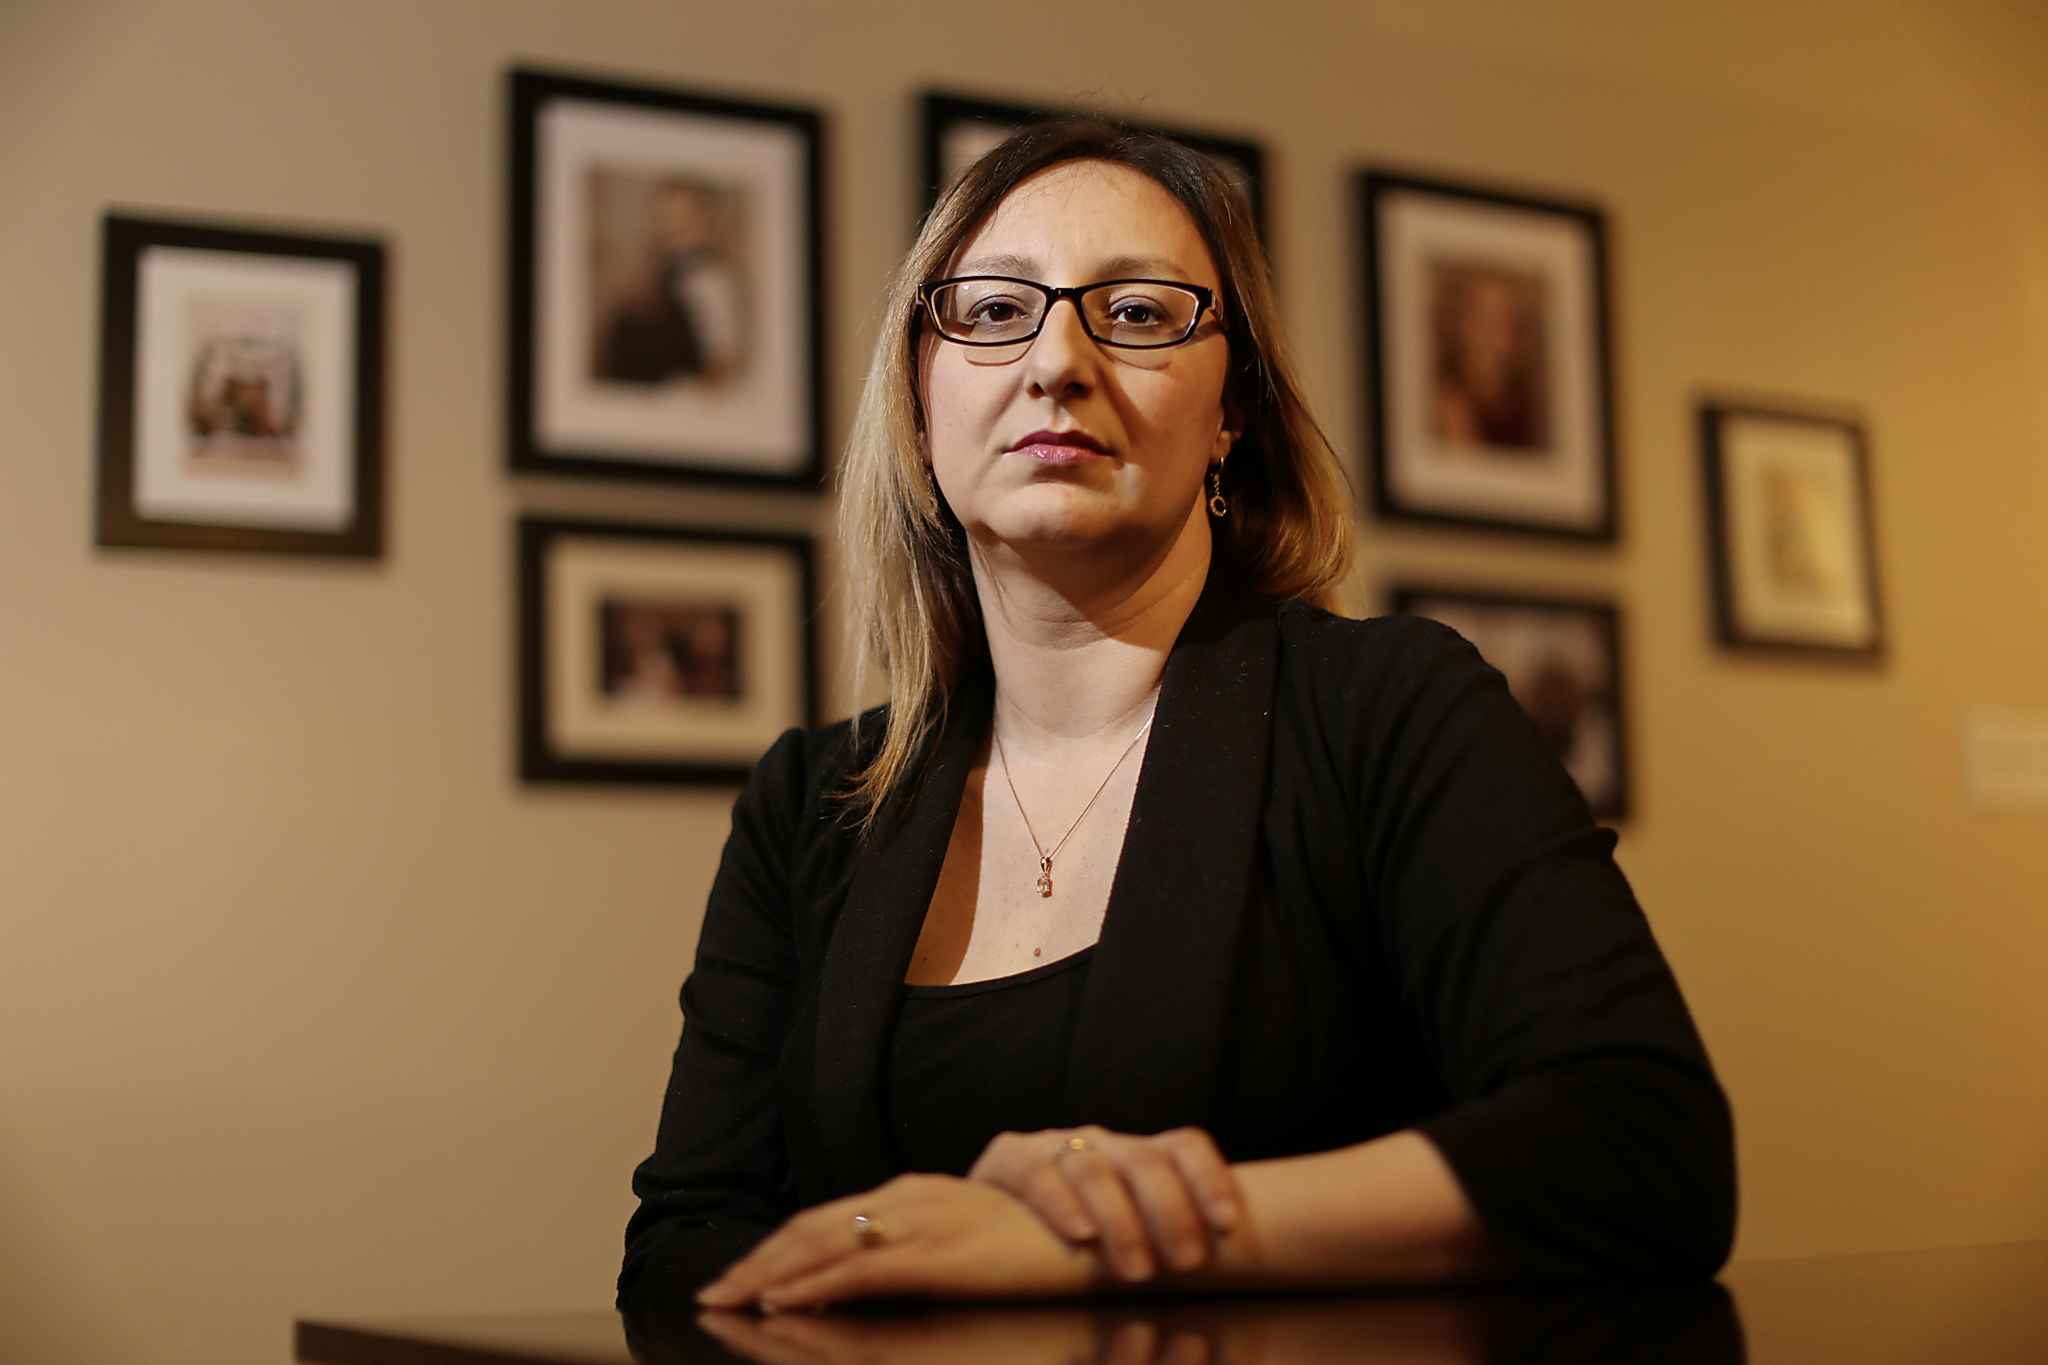 Joelle Saltel-Allard, former press secretary for Stan Struthers, the former minister accused of sexual misconduct, says it's time for ex-premier Greg Selinger to walk the walk and resign.